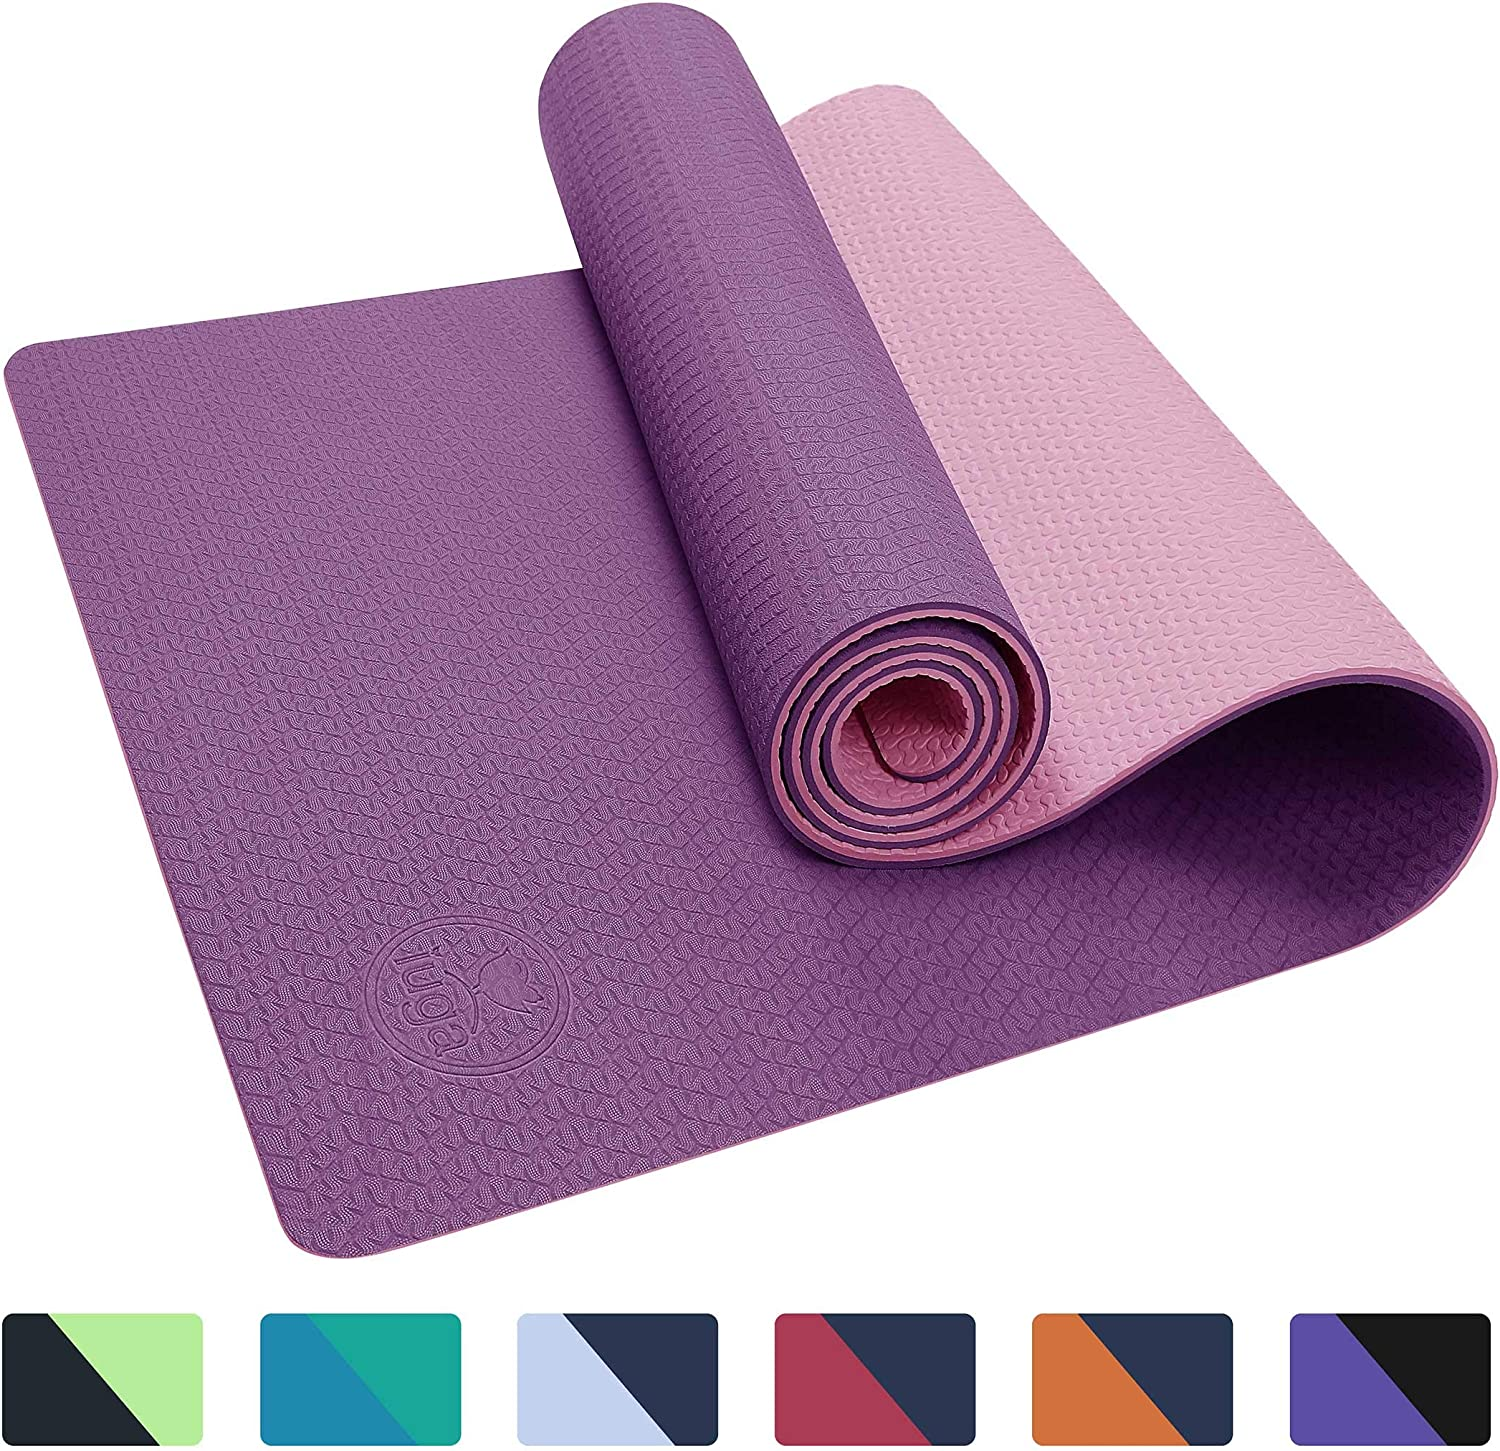 Non Slip IUGA Non Slip Yoga Mat with Carry Strap Thickness 6mm Dual Color Design Durable and Lightweight Eco Friendly /& SGS Certified TPE material Odorless